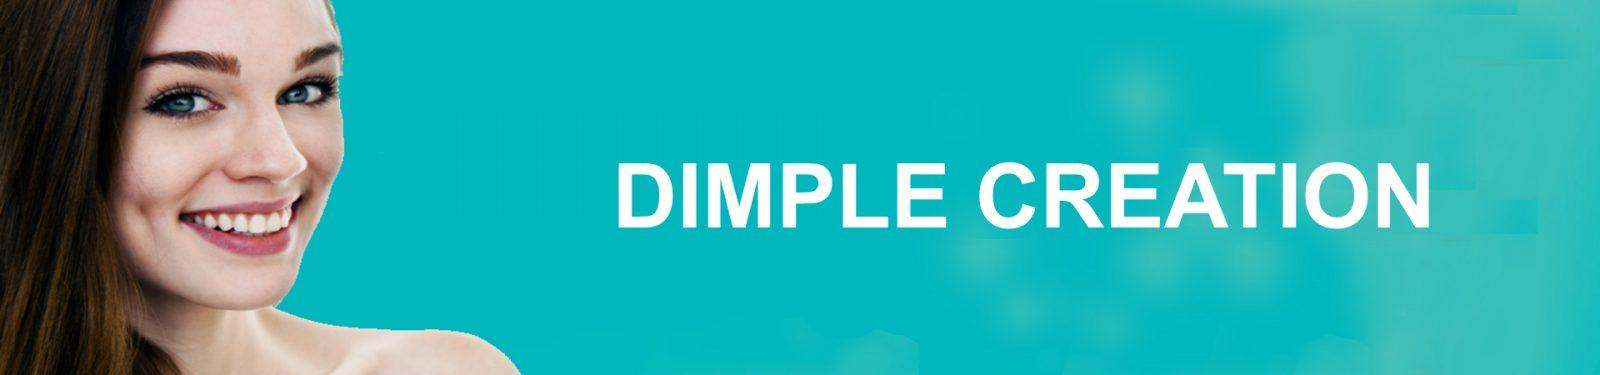 dimple cration copy